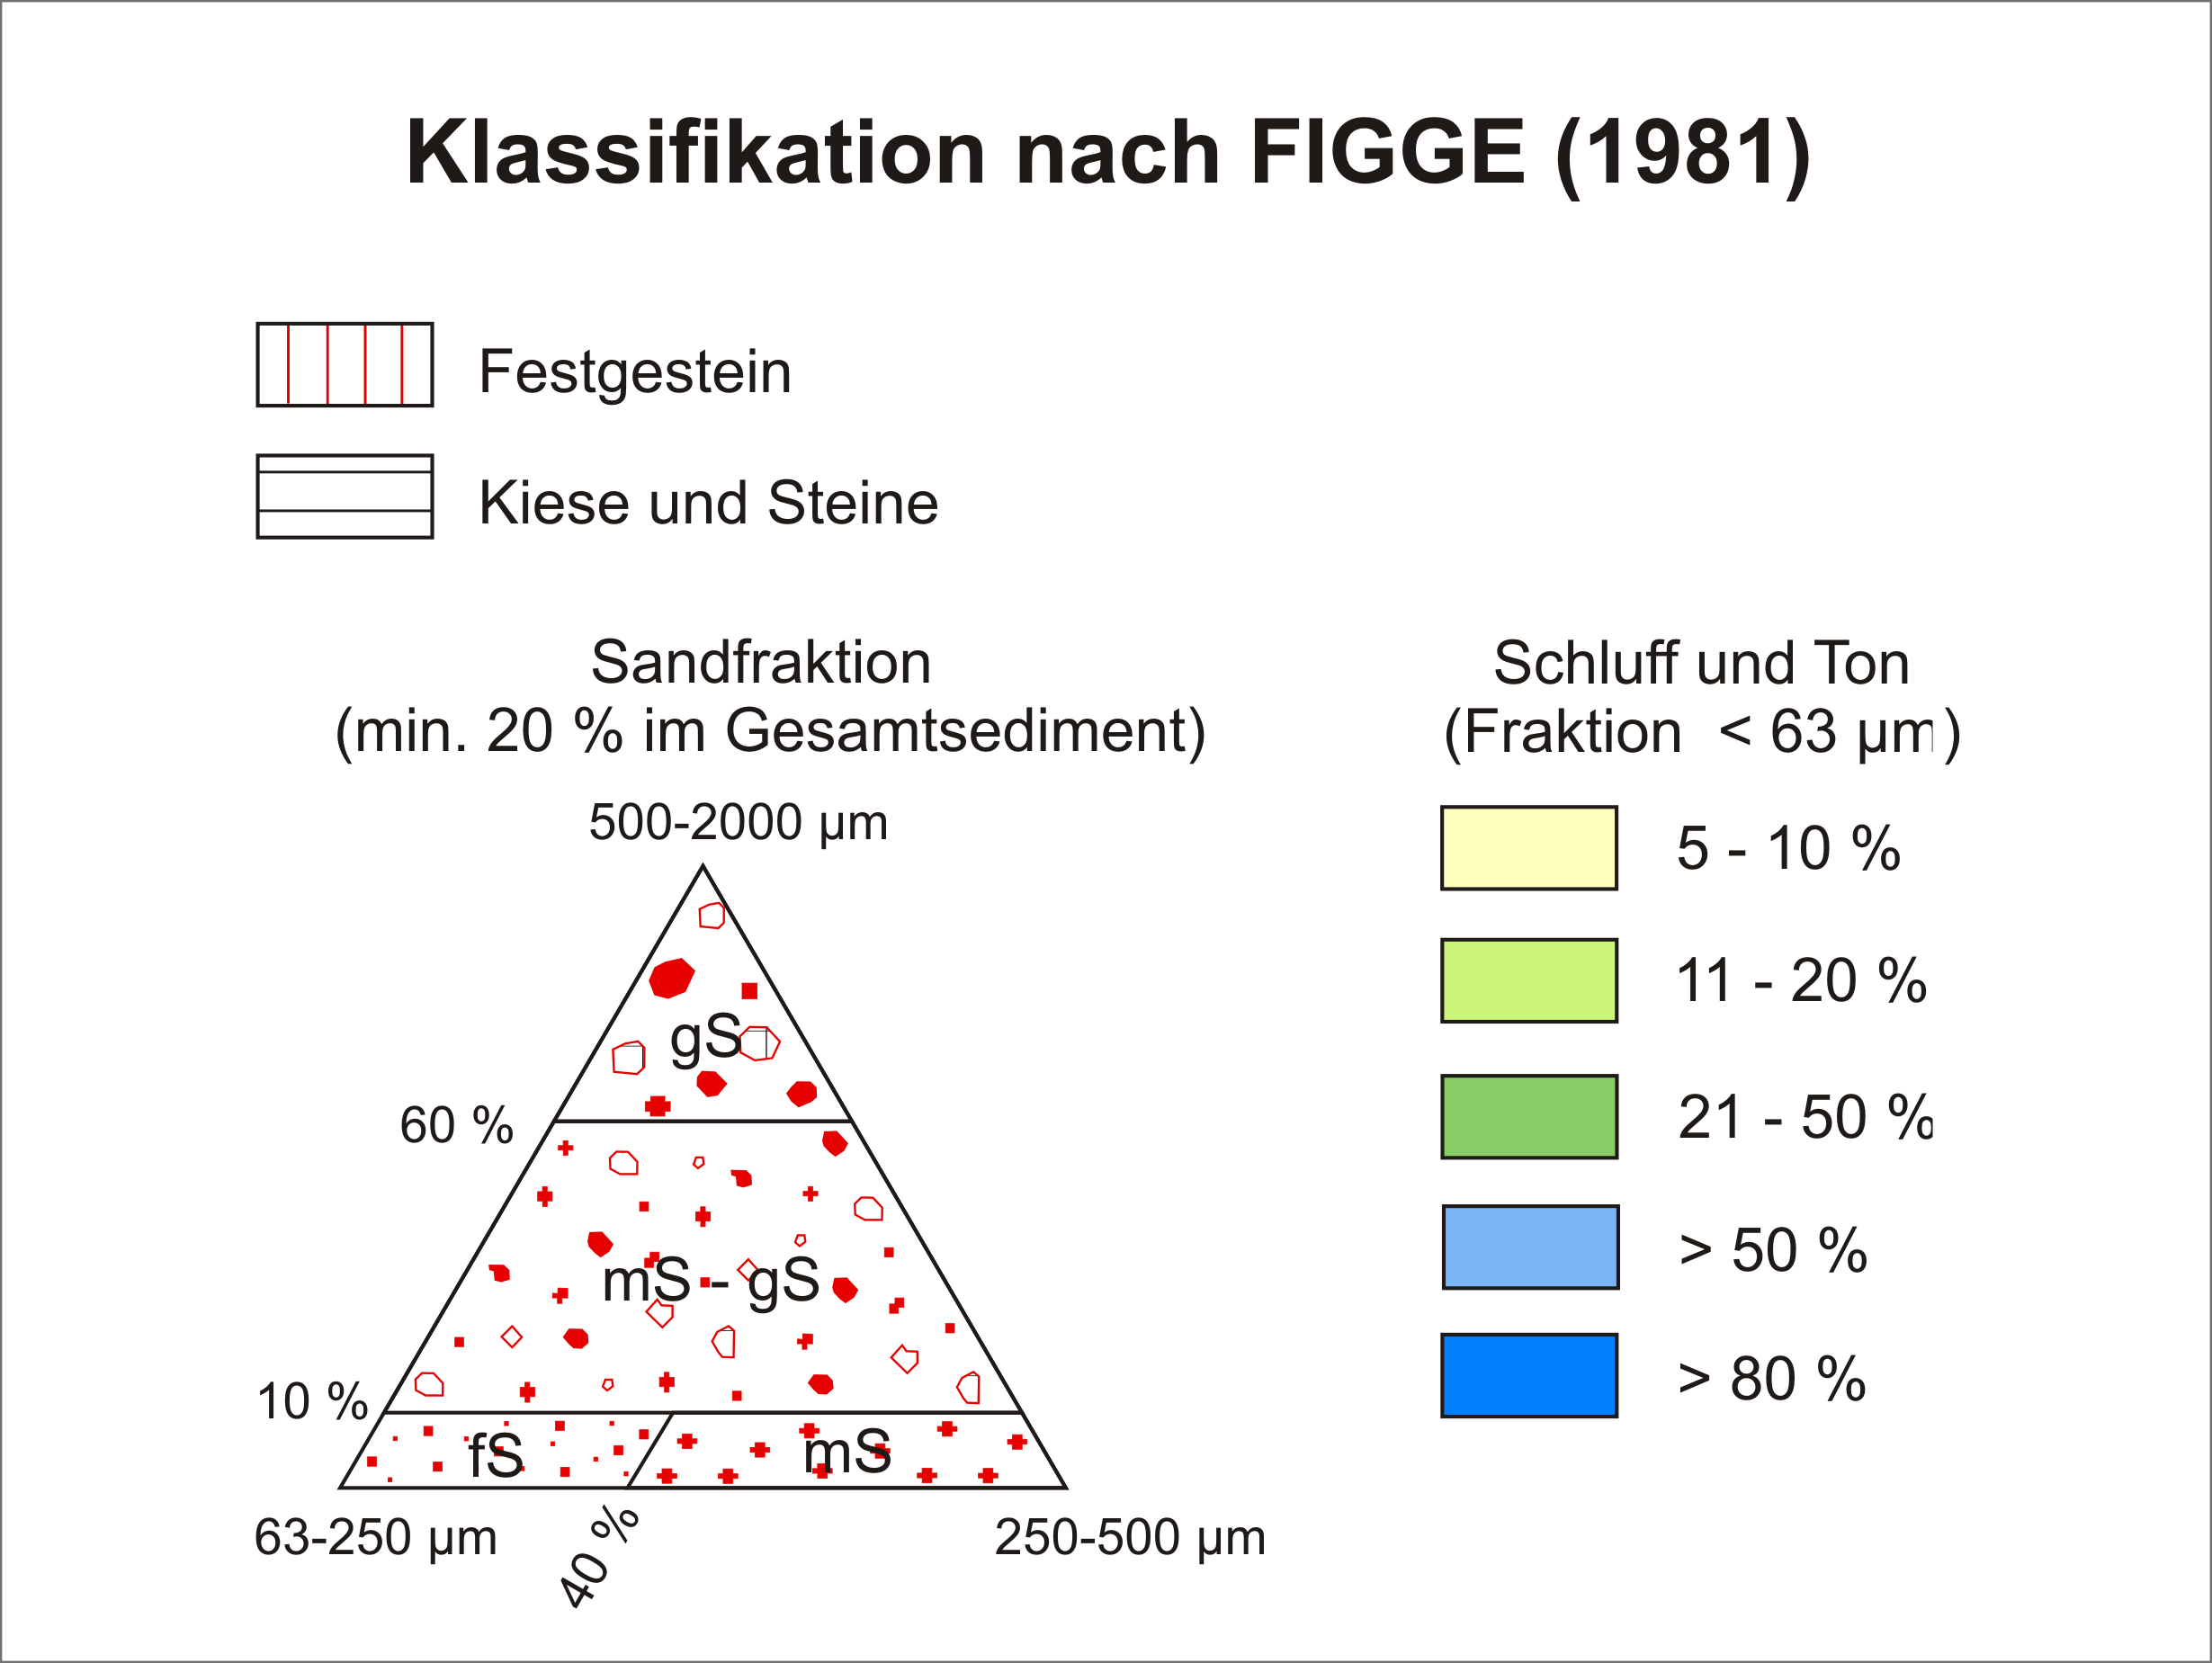 Figge_Klassifikation_fürThemenreise.png